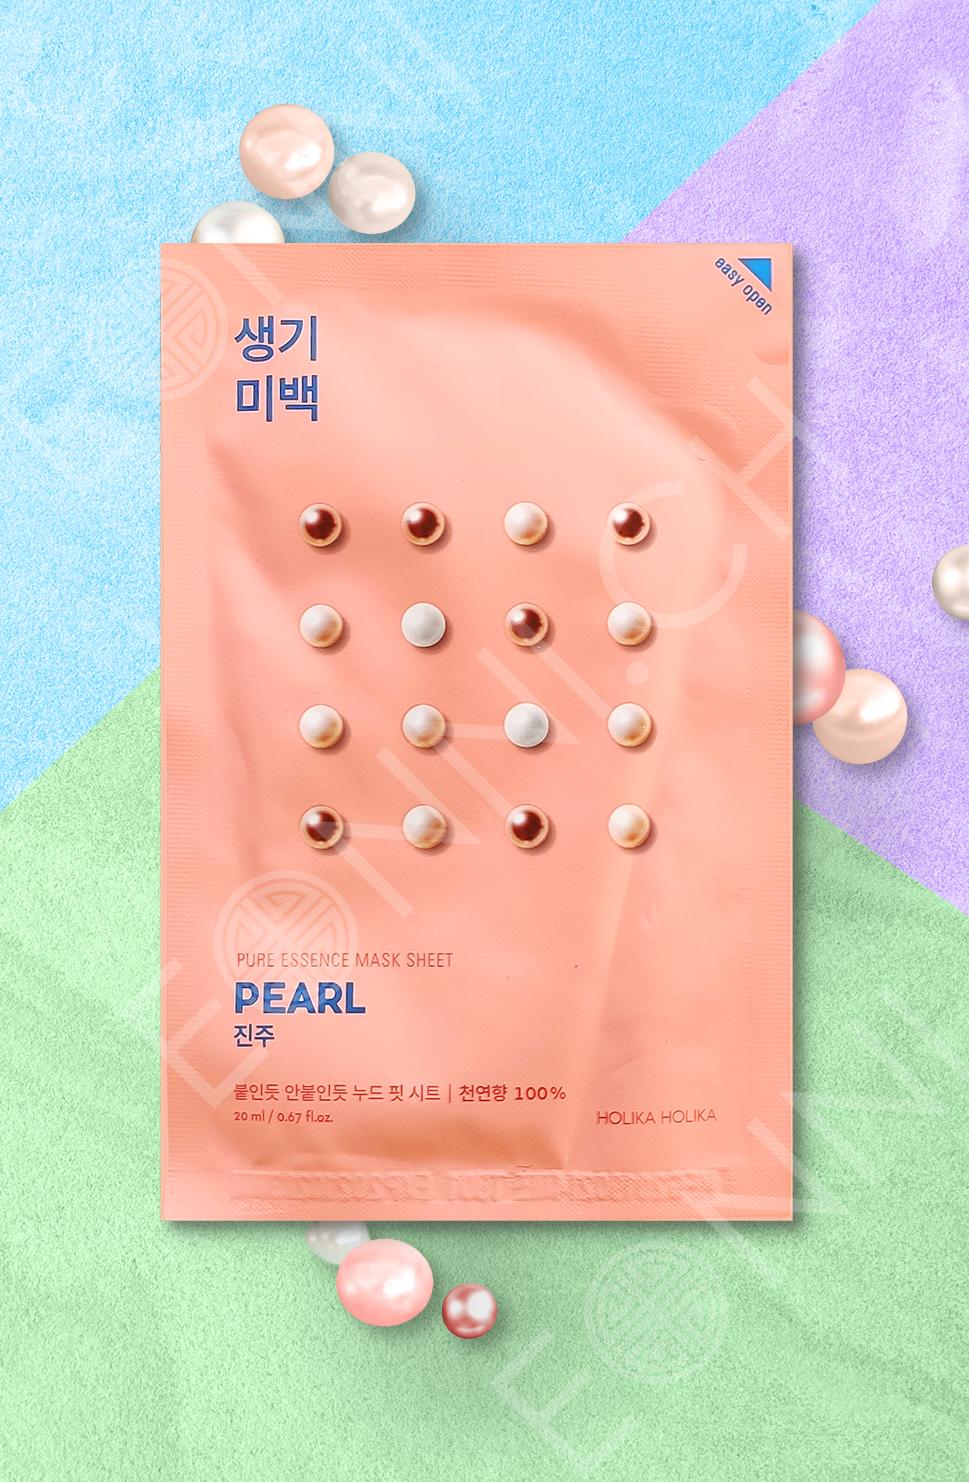 Holika Holika Pure Essence Mask Sheet Pearl Sheet Mask